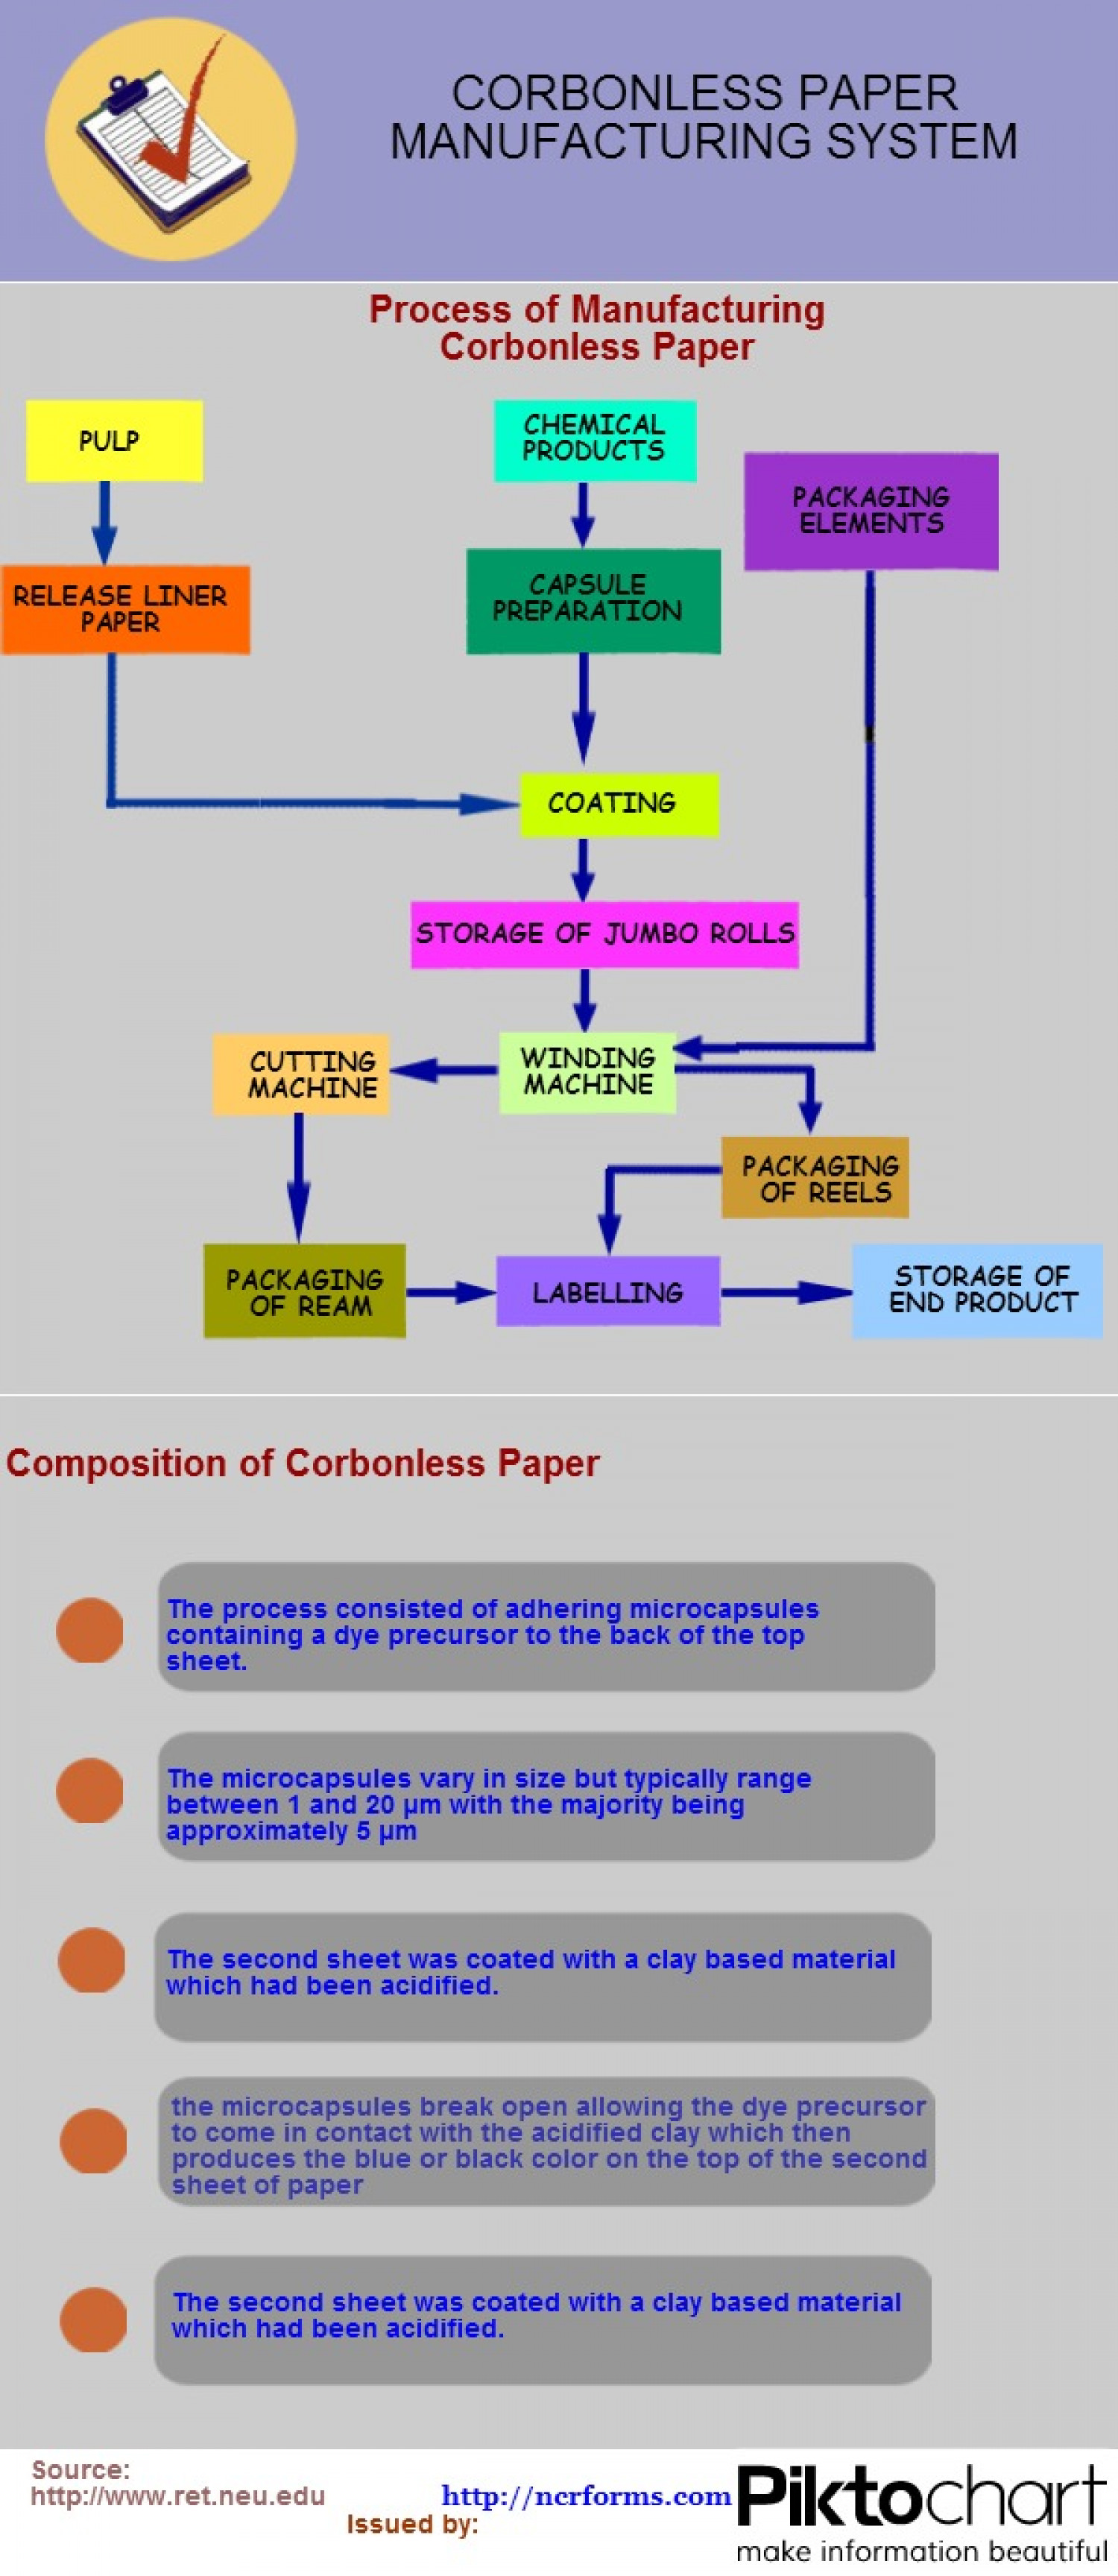 Carbonless Paper Manufacturing System Infographic